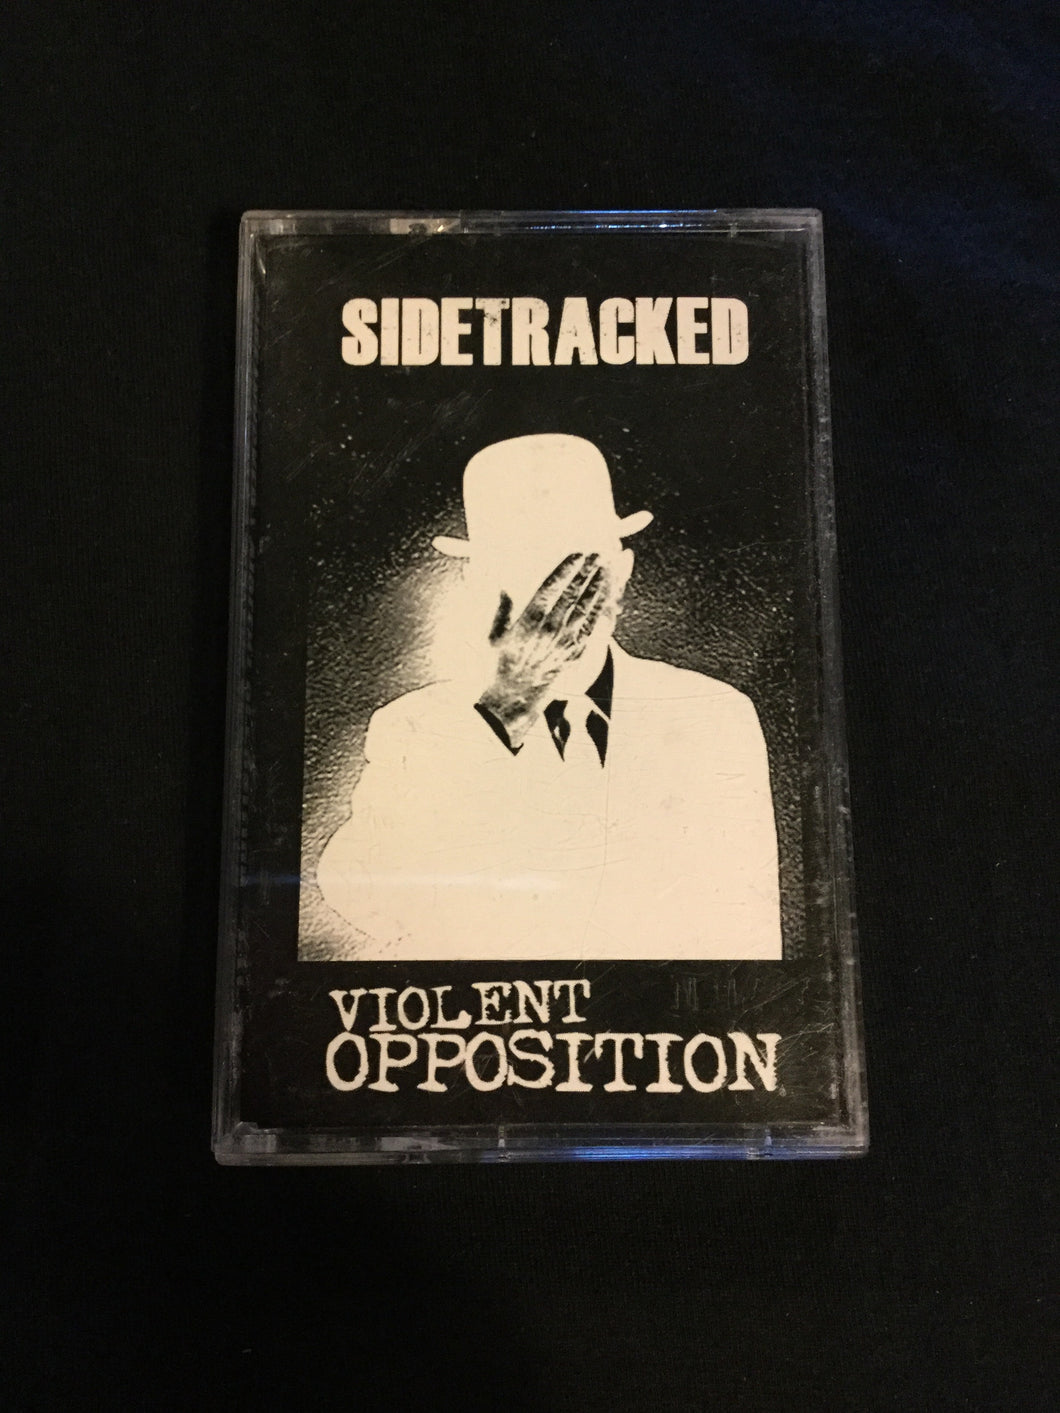 Sidetracked / Violent Opposition Tape